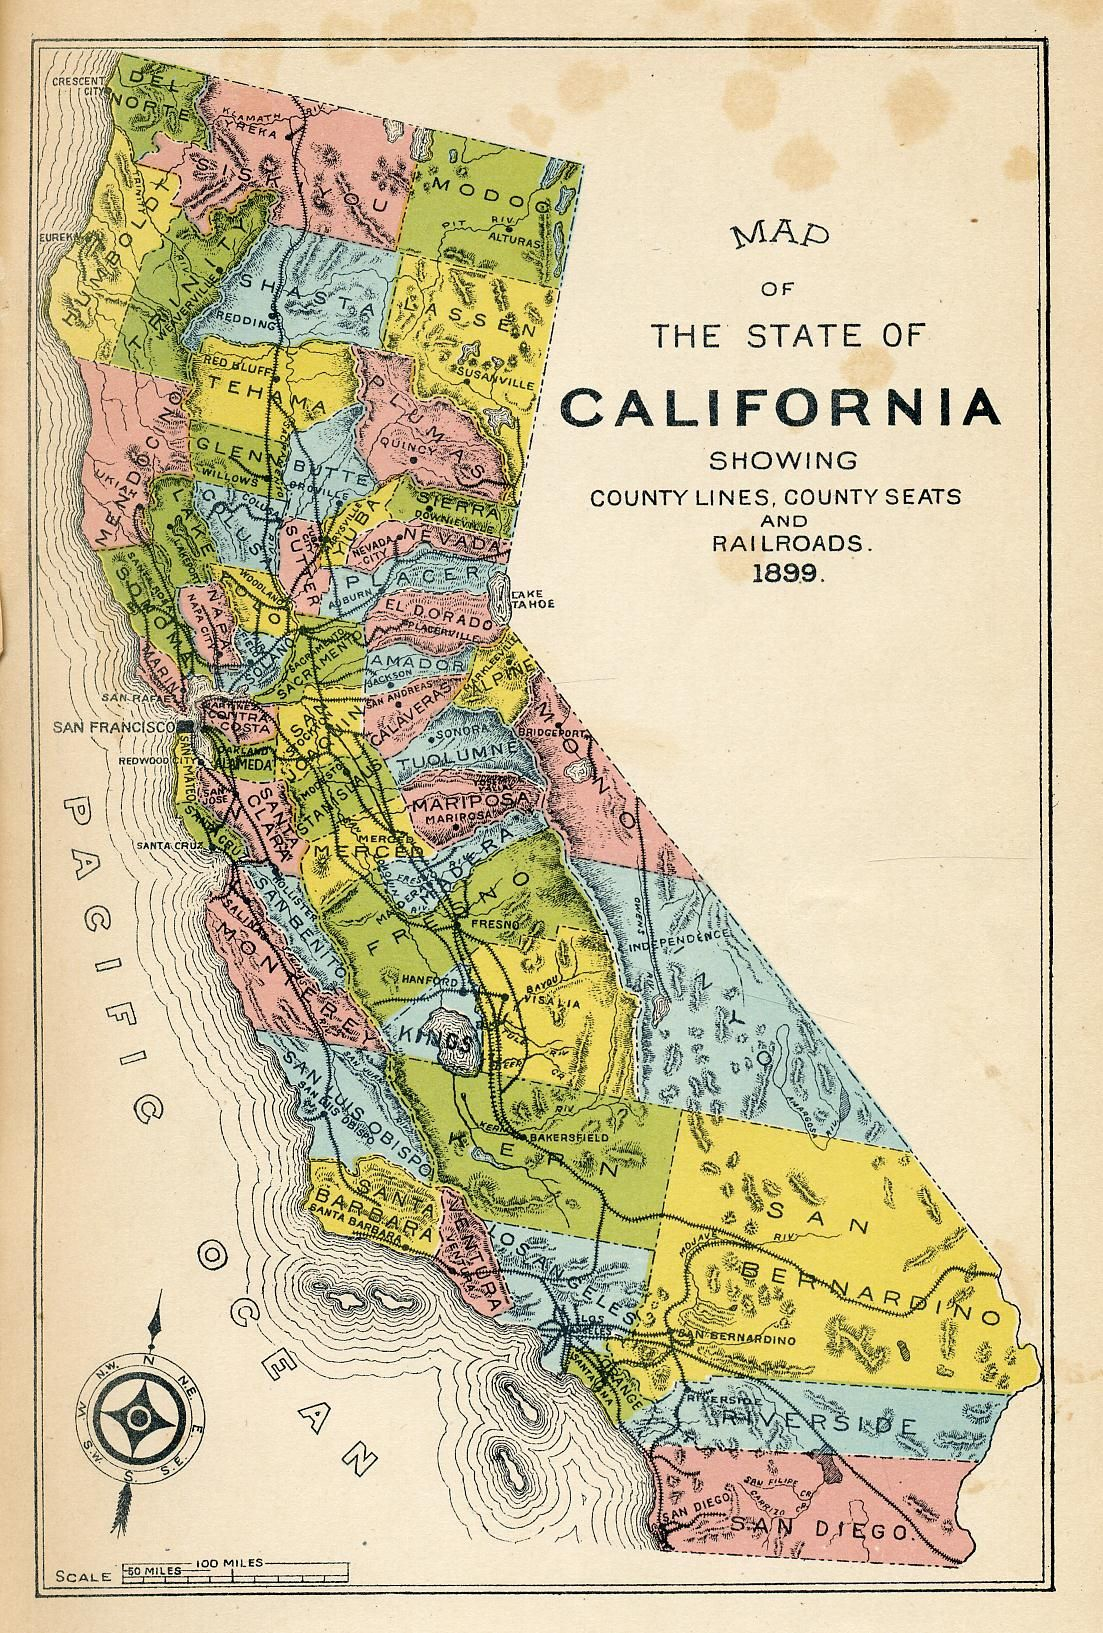 Sept 9 1850 California becomes the 31st US state